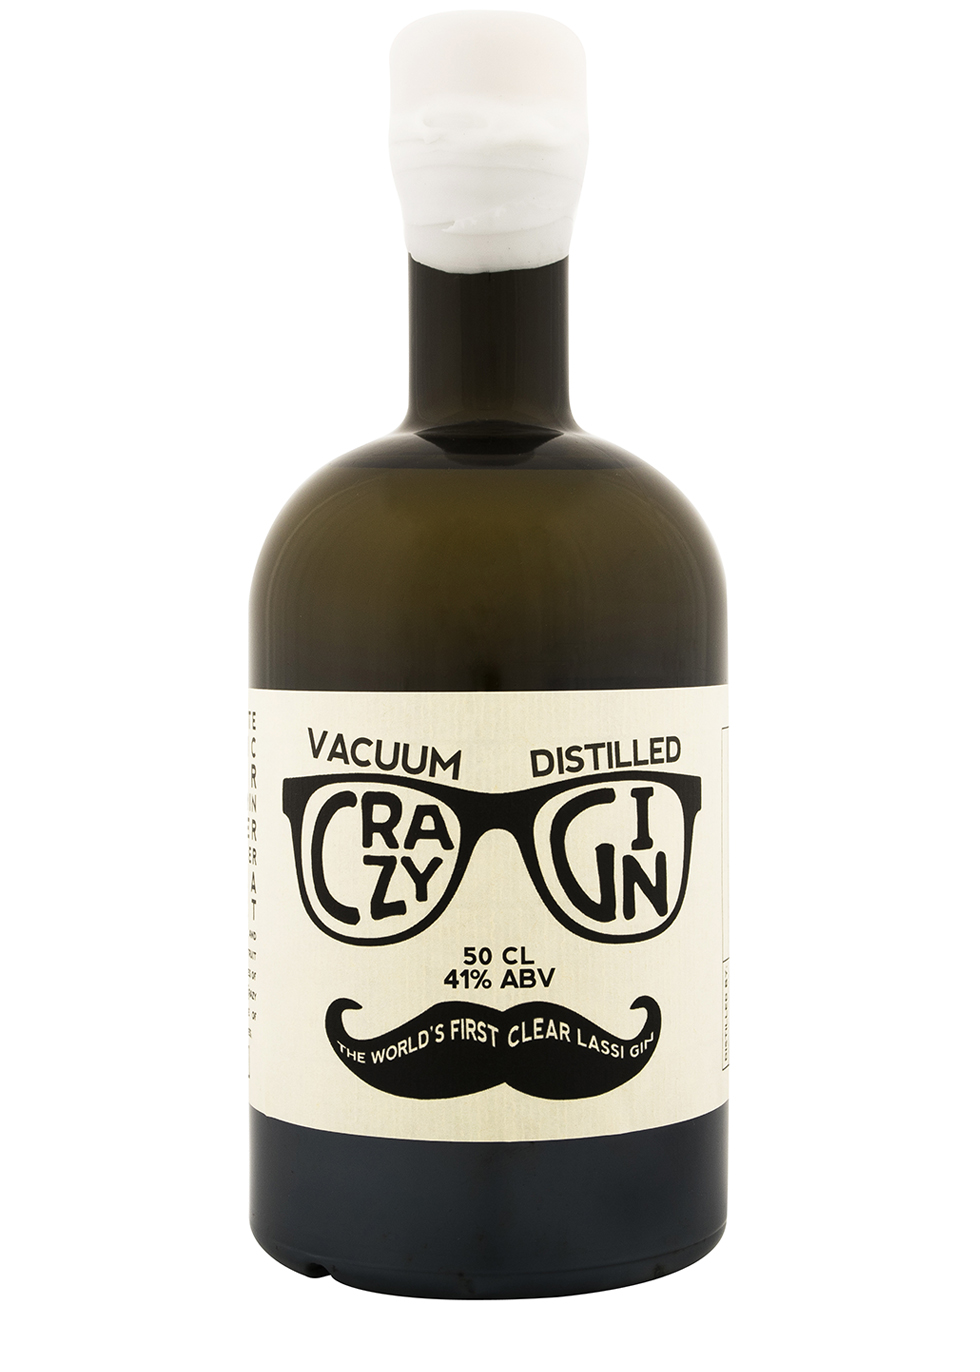 A dark green bottle with a cream label that says vacuum distilled crazy gin with a pair of glasses and a moustache